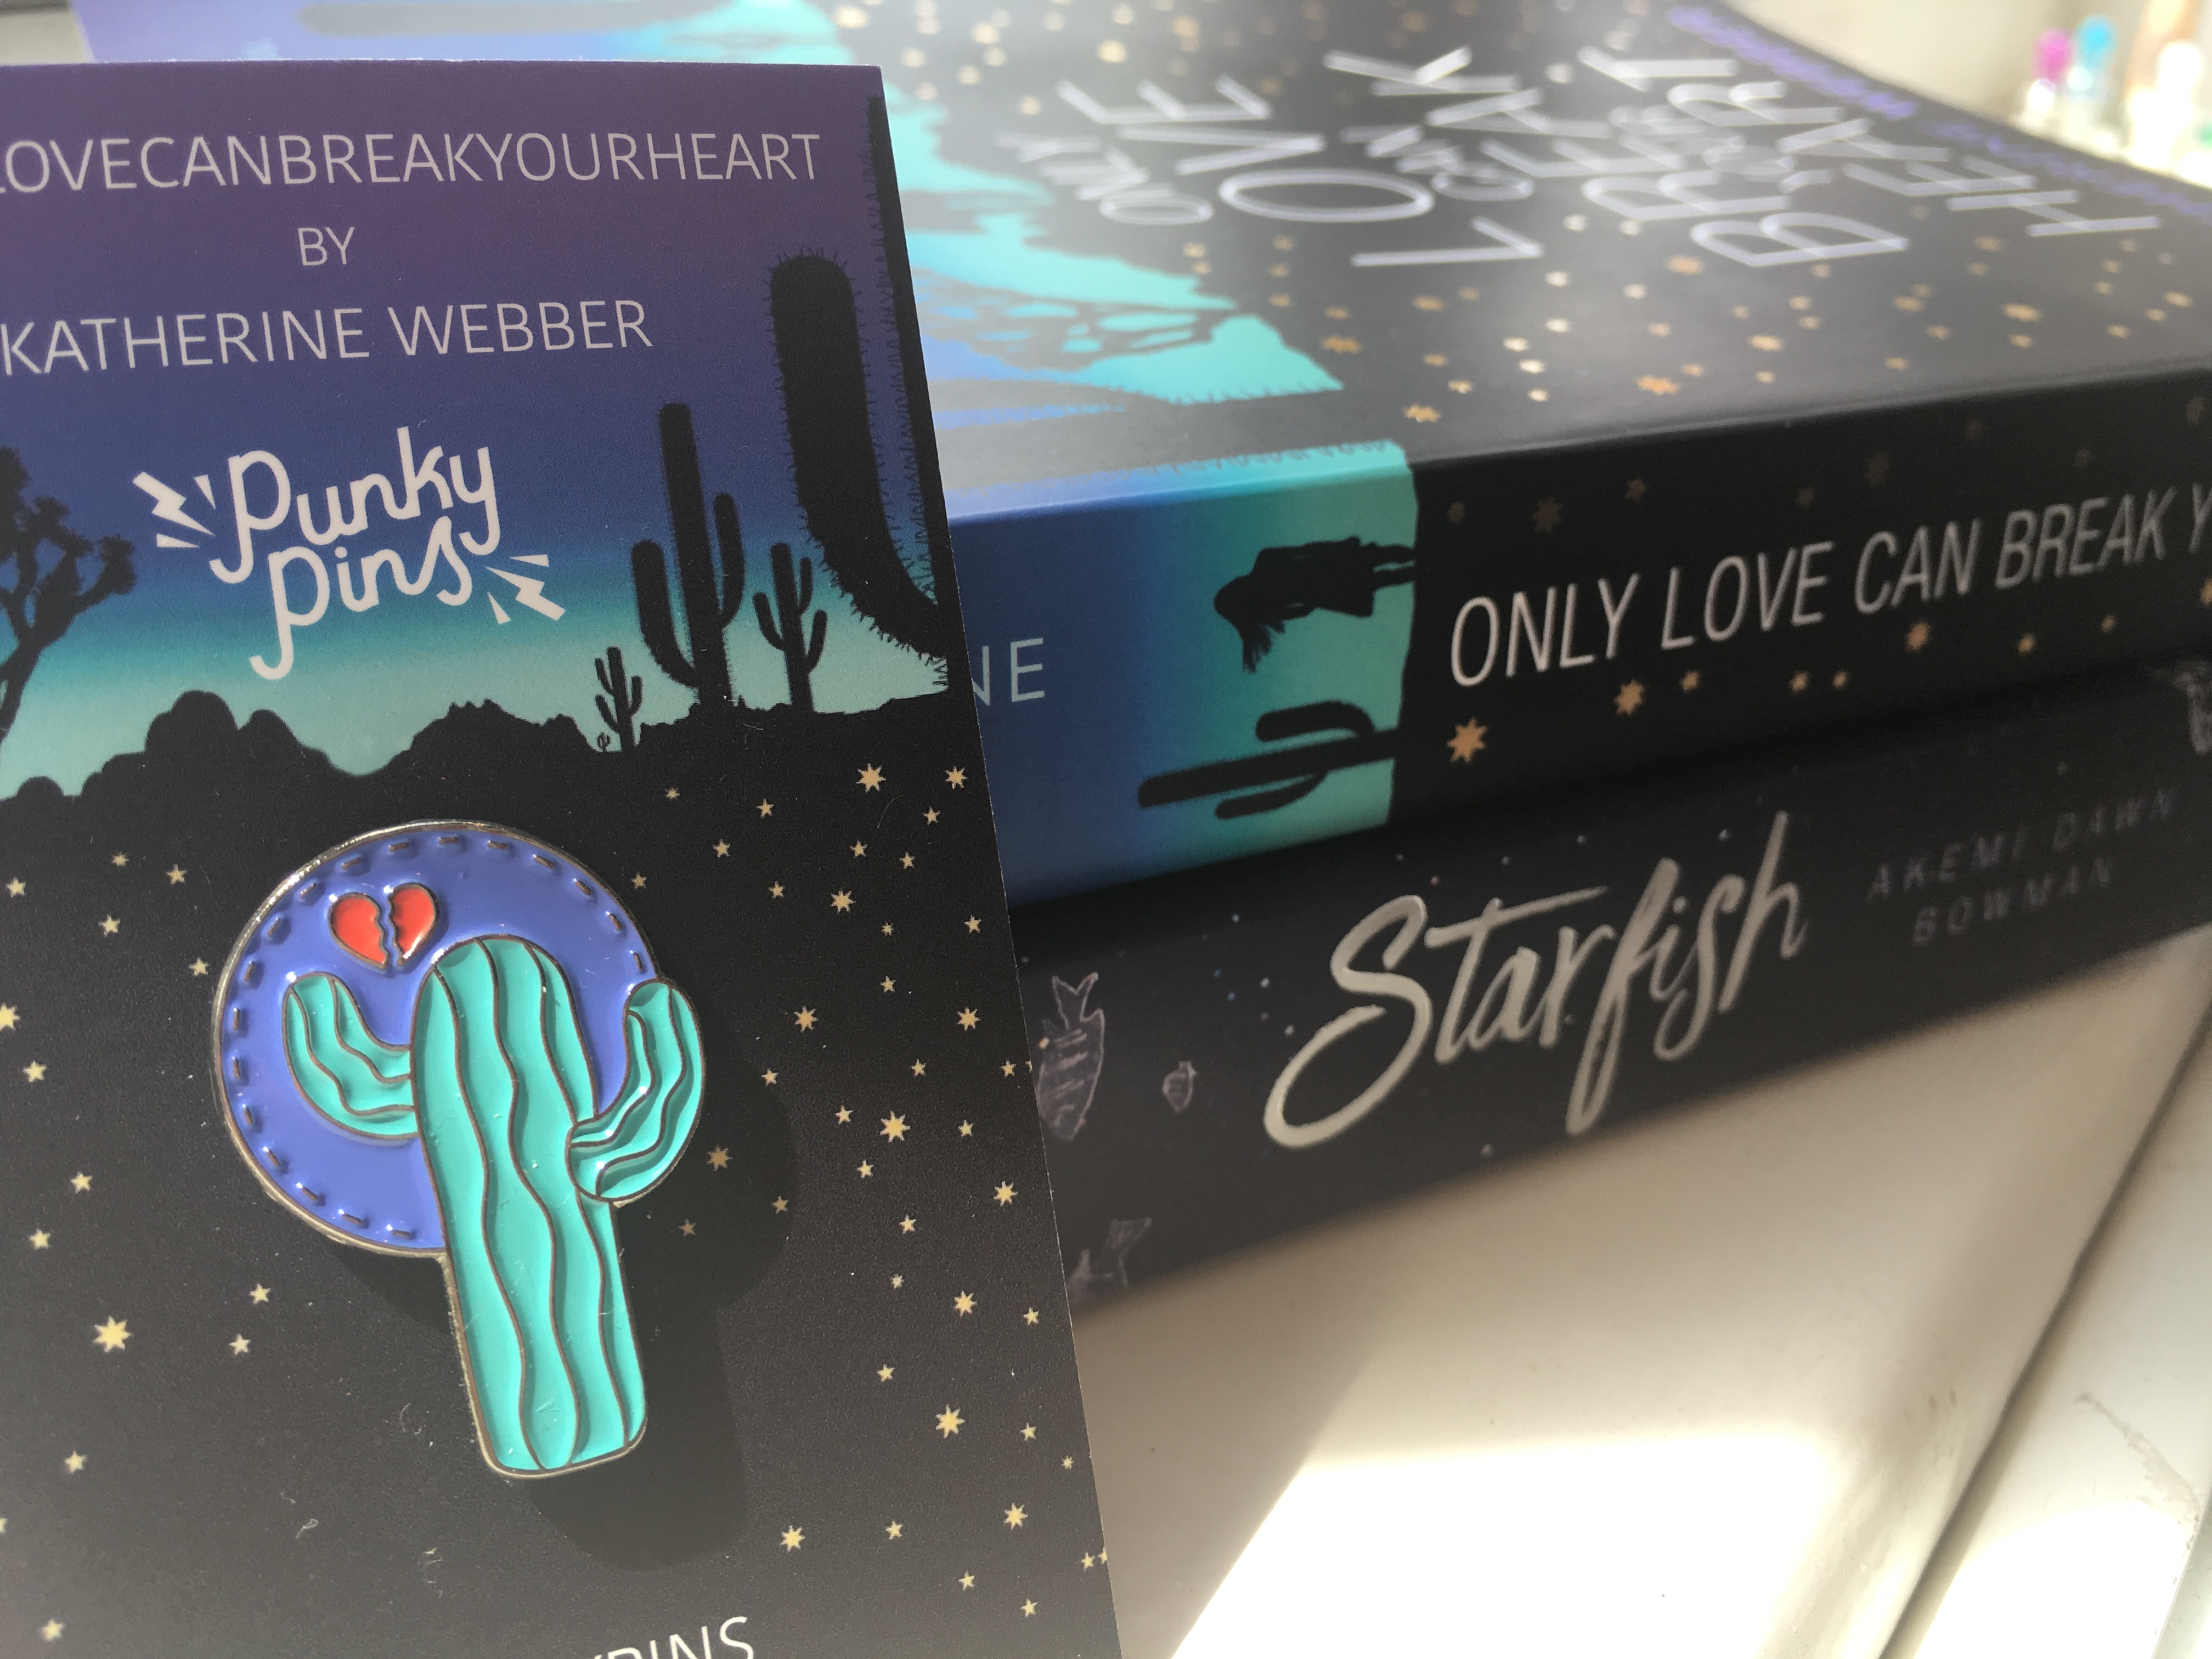 The spines of the books Only Love Can Break Your Heart and Starfish. An enamel pin with a cactus and a broken heart is in the foreground.